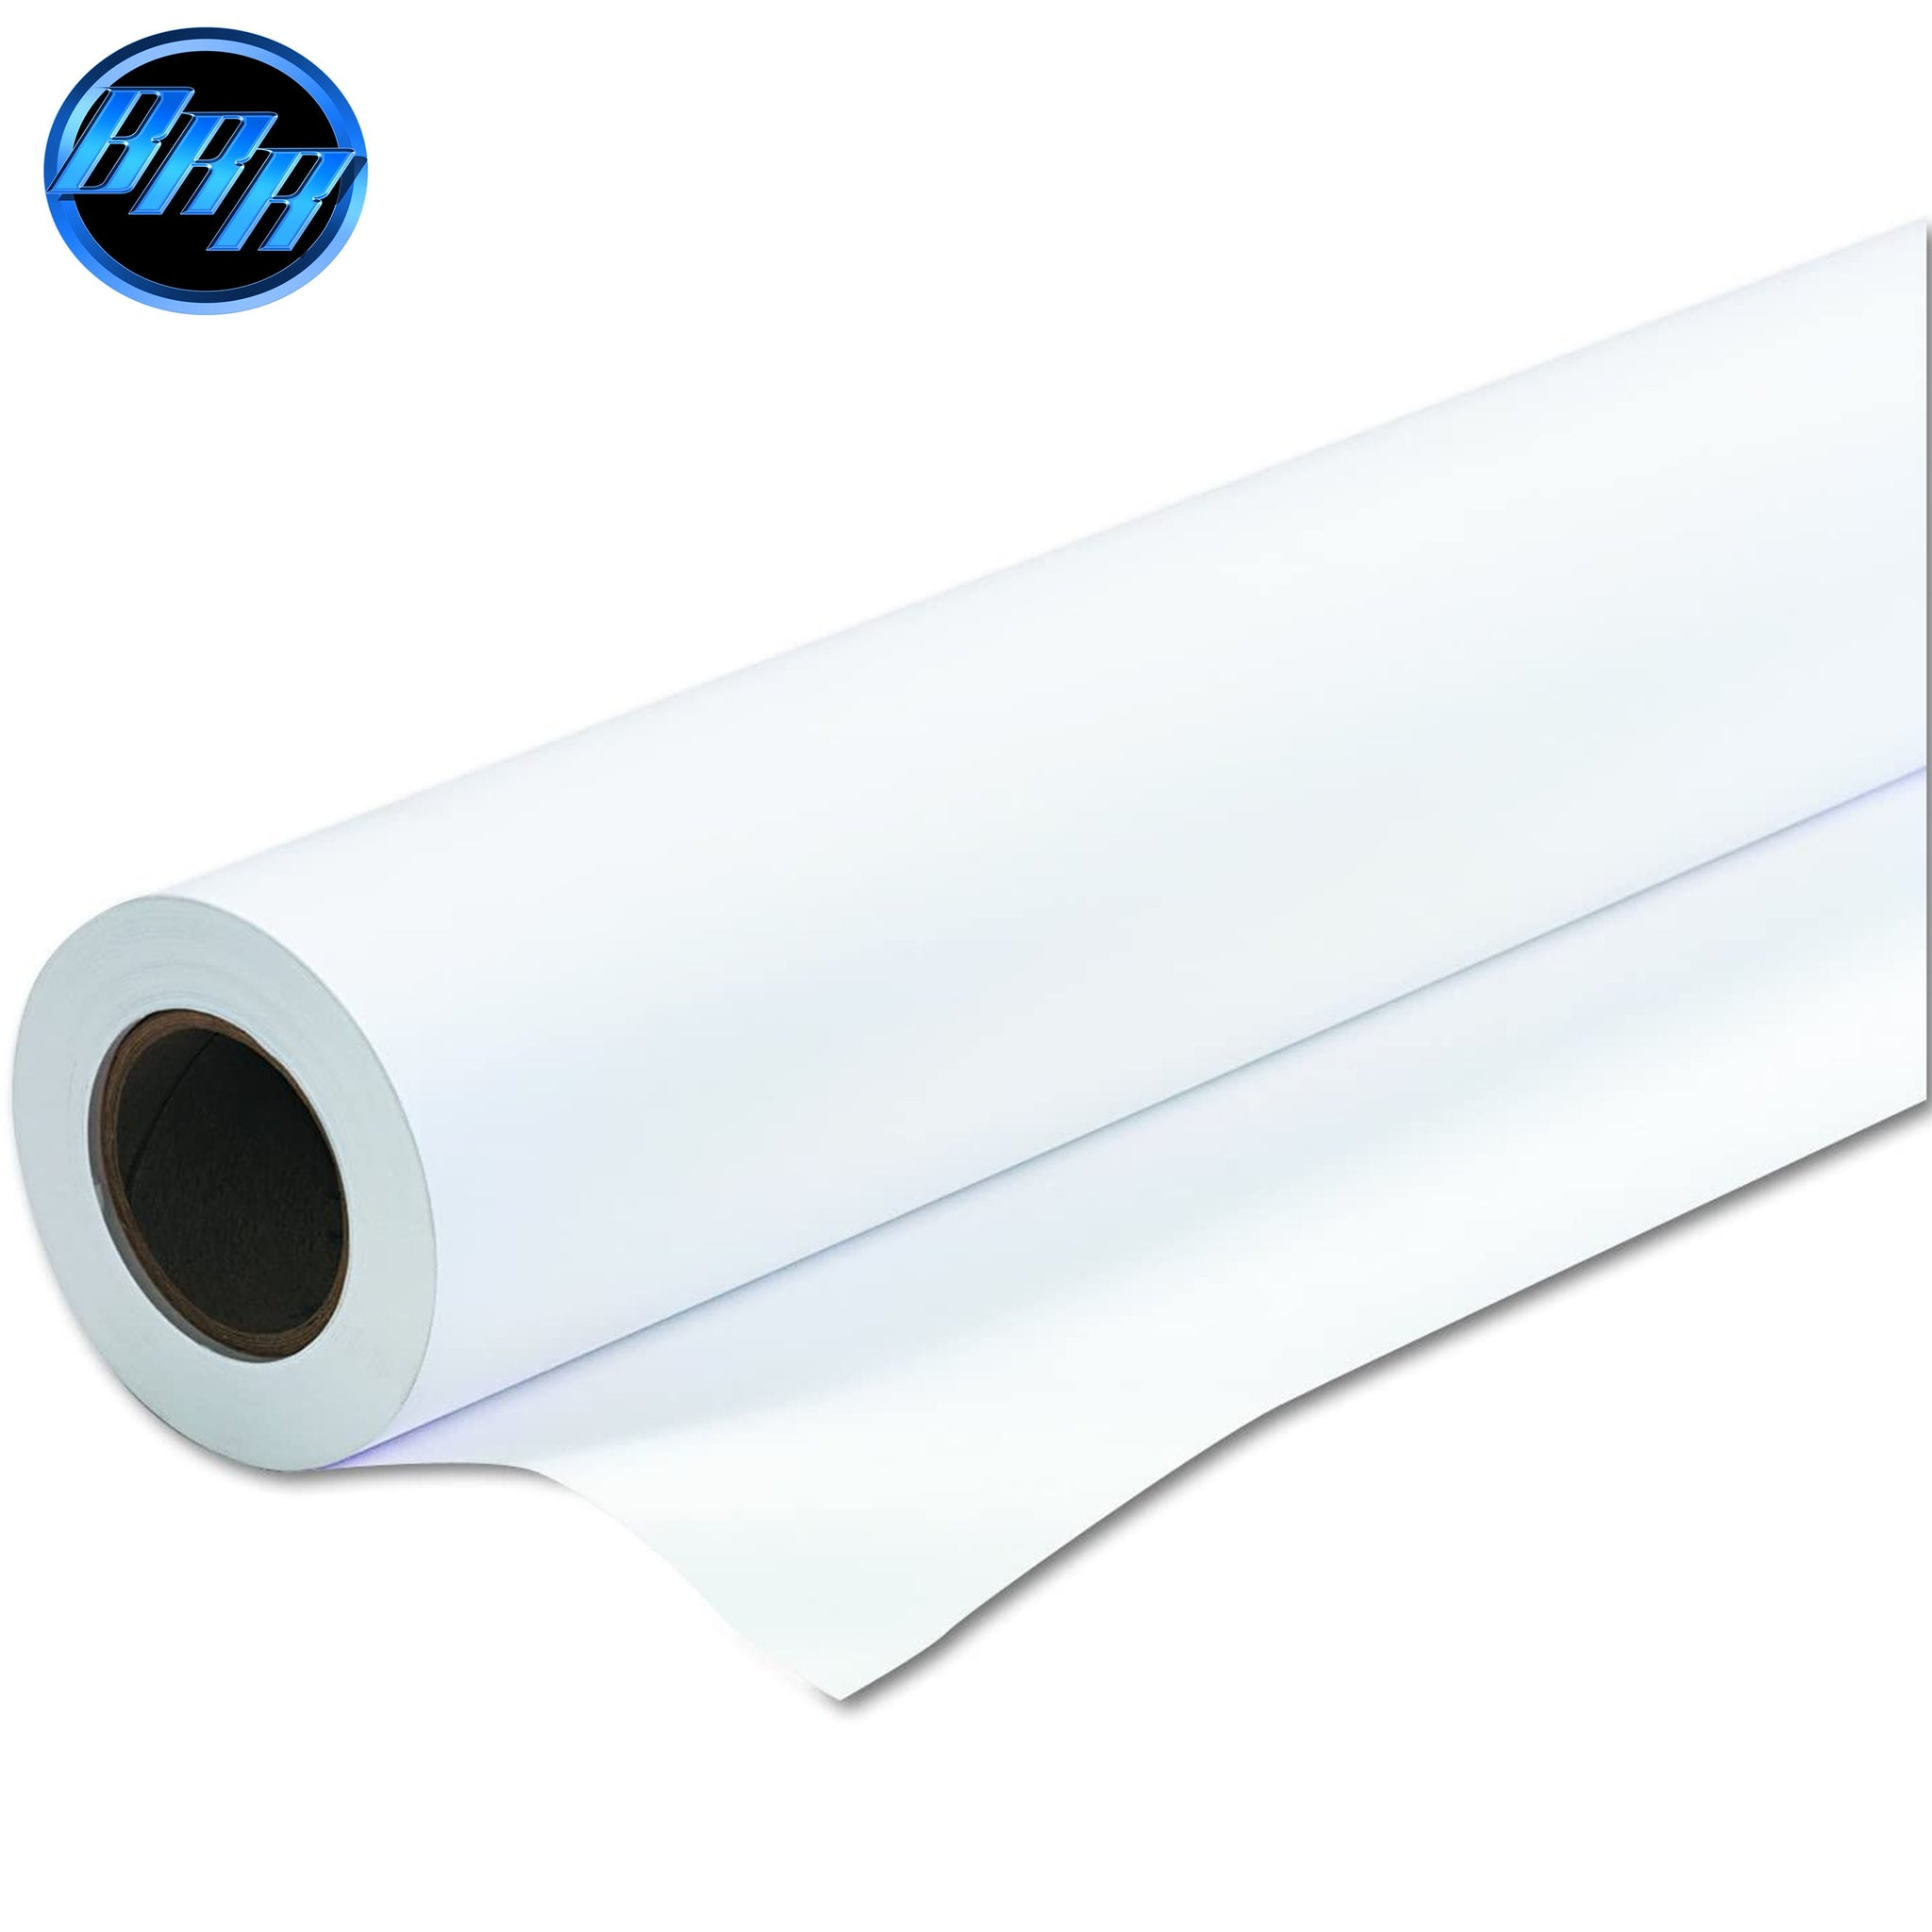 "(4 ROLLS) (36"" x 150', 20lb) plotter paper 36 x 150 CAD Paper Rolls 